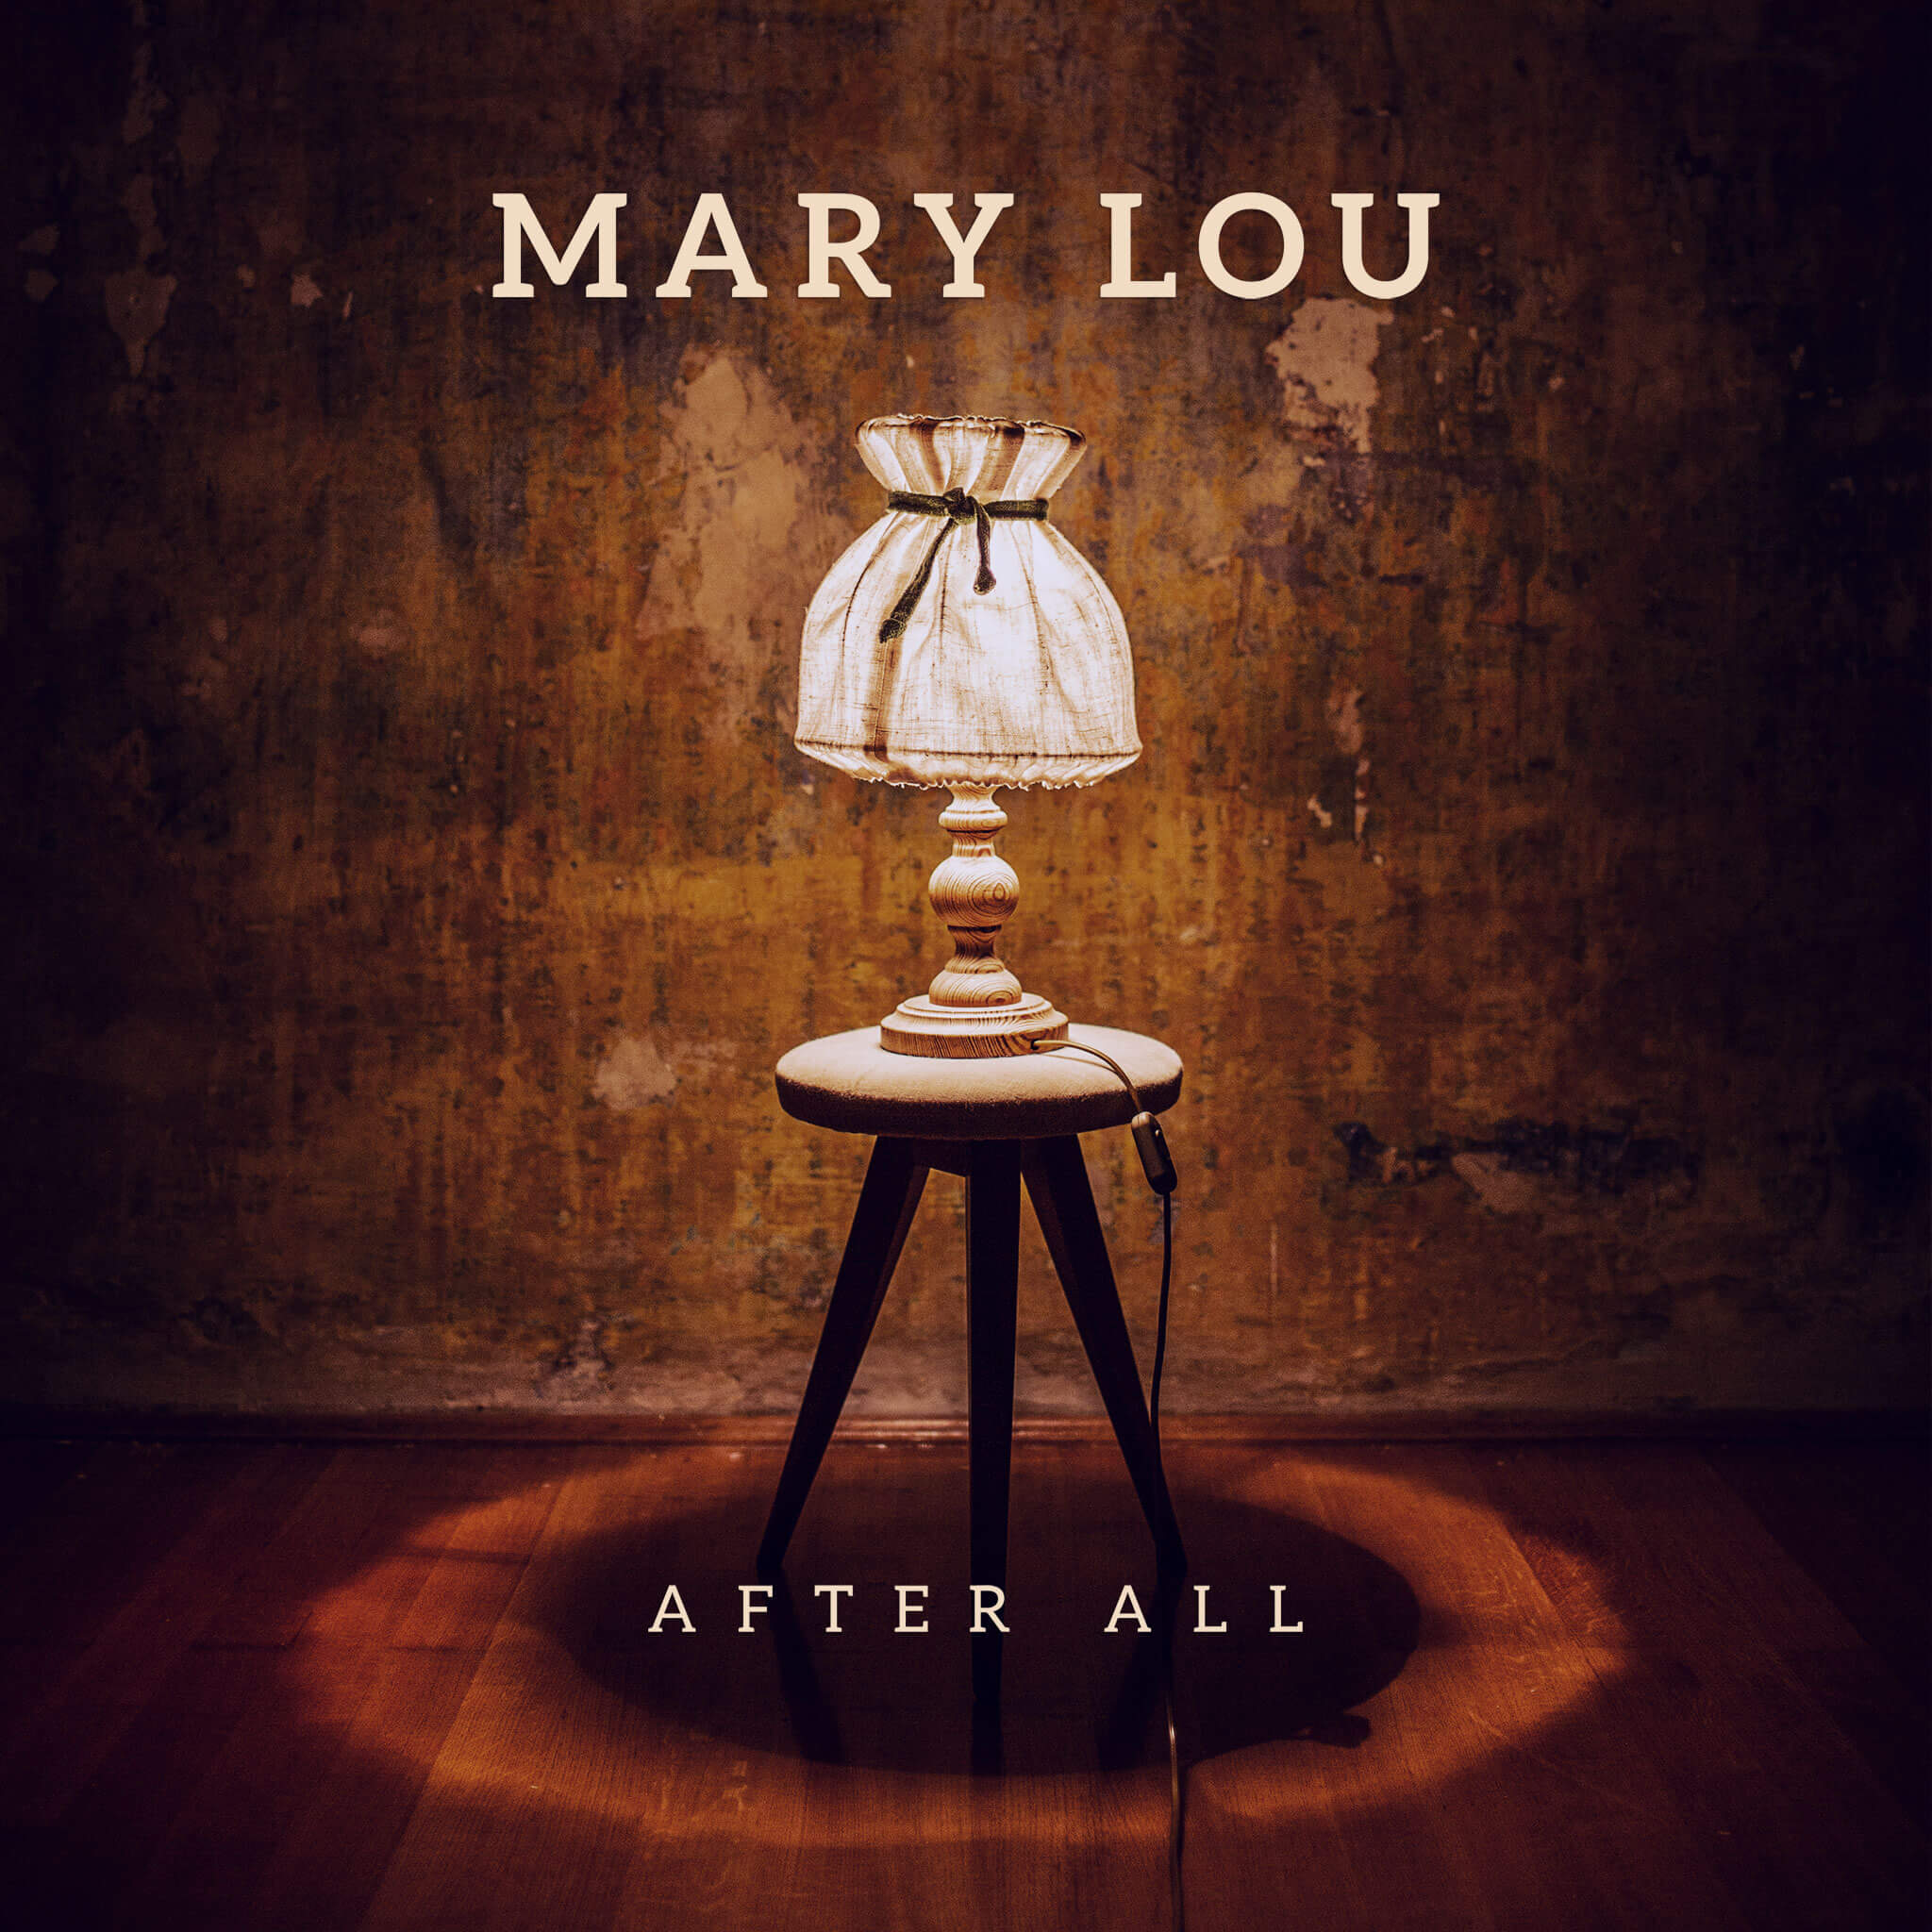 Mary Lou - After All Image